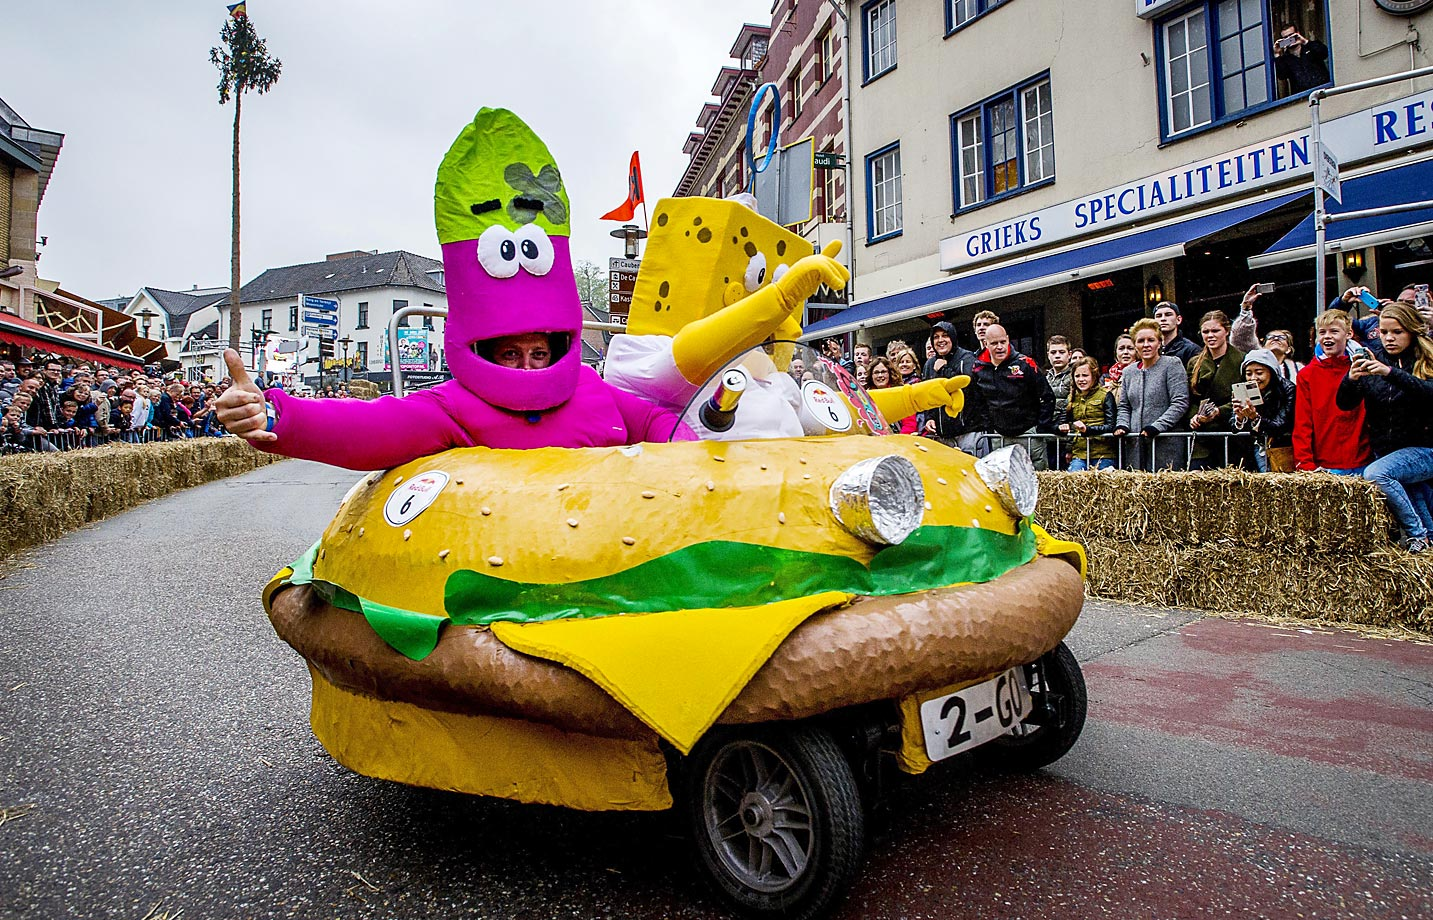 The Red Bull Soapbox Race in Valkenburg, Netherlands.